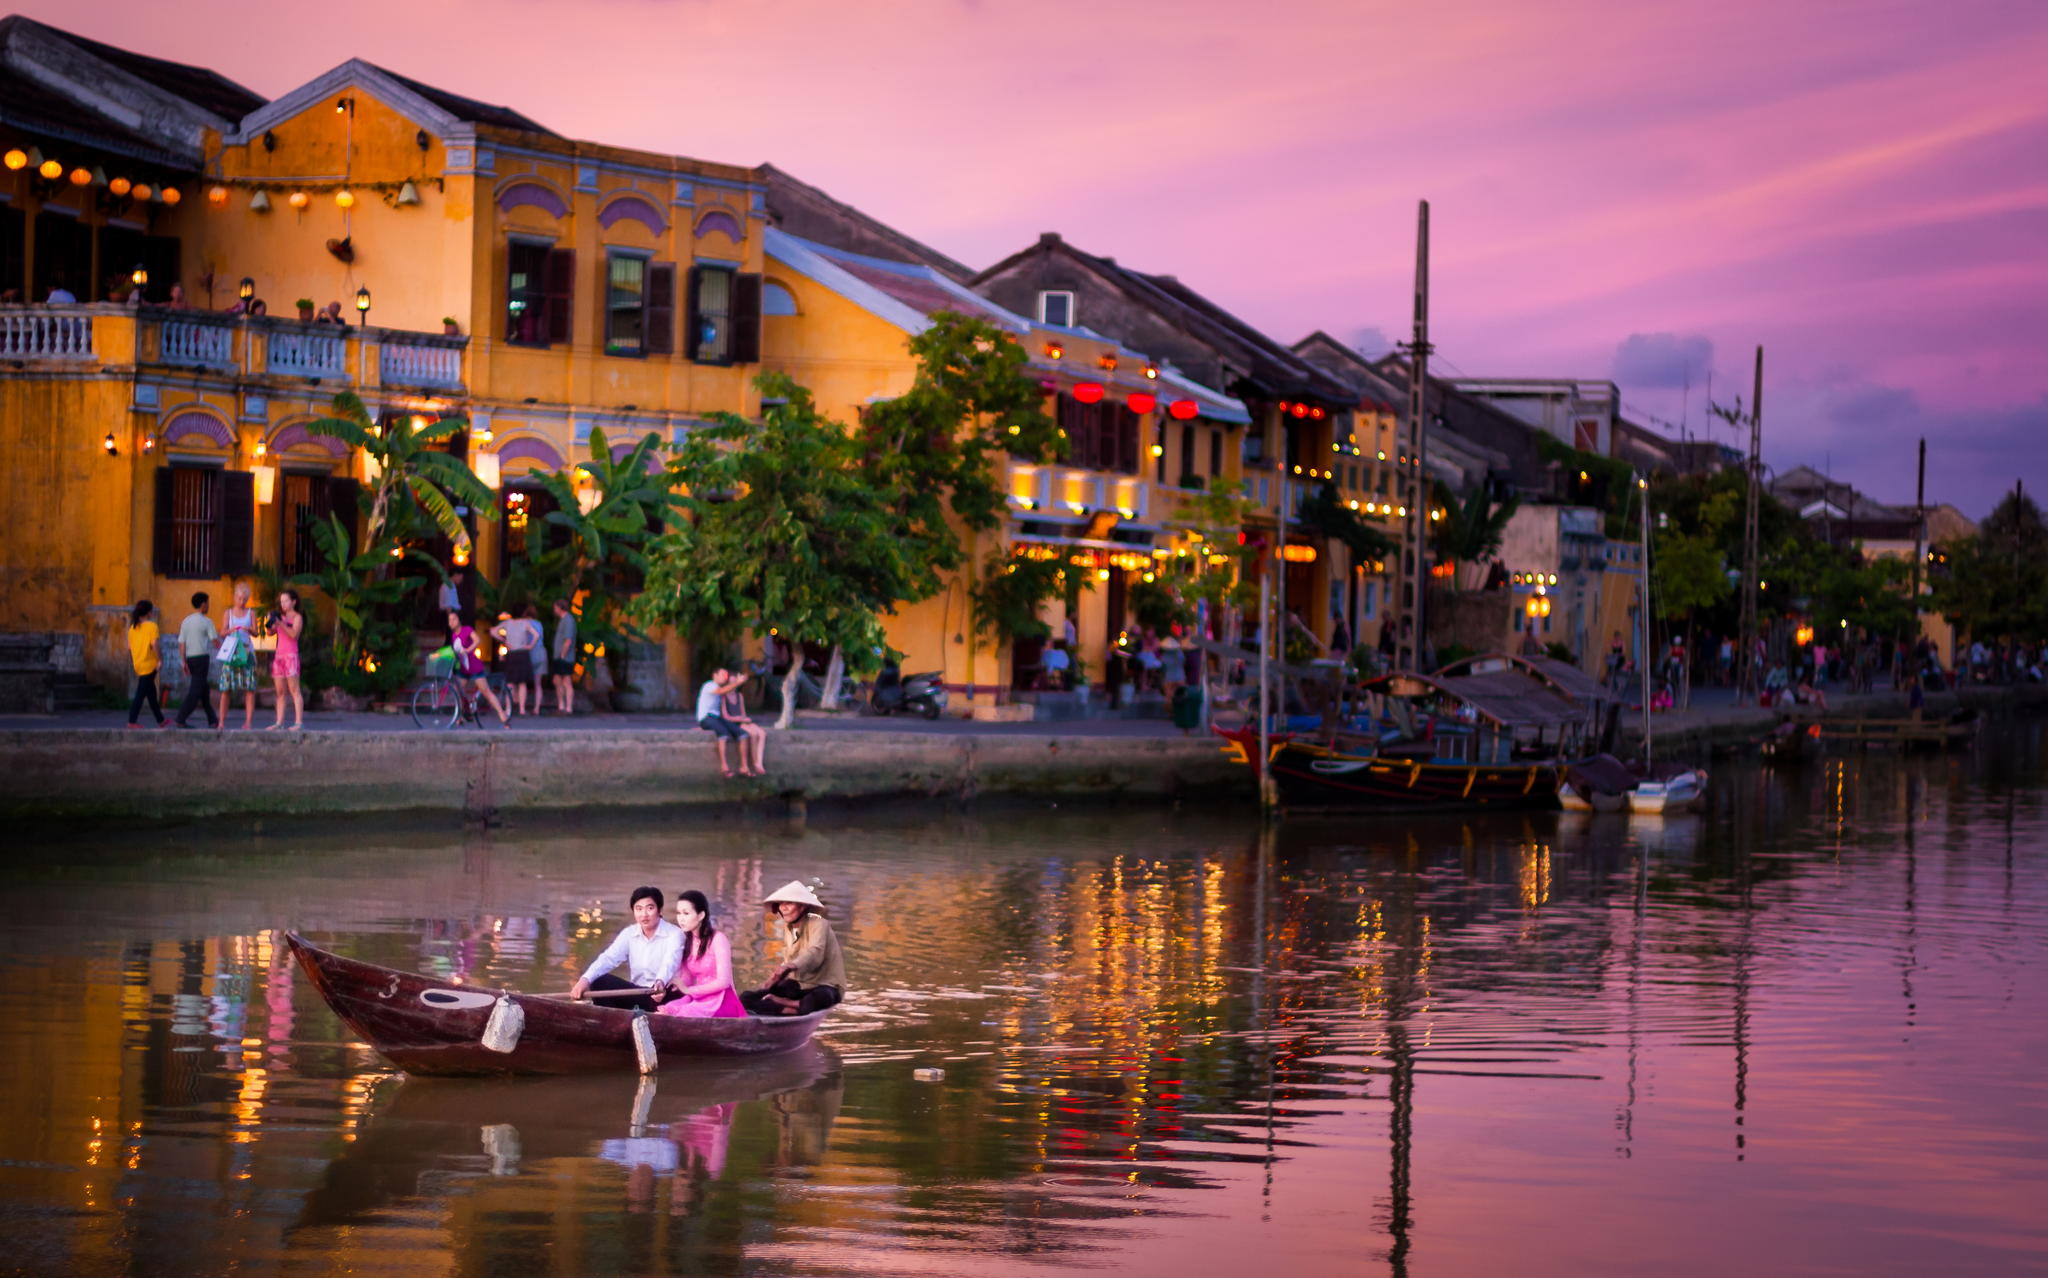 International workshop on preserving and promoting urban heritage values in Hoi An